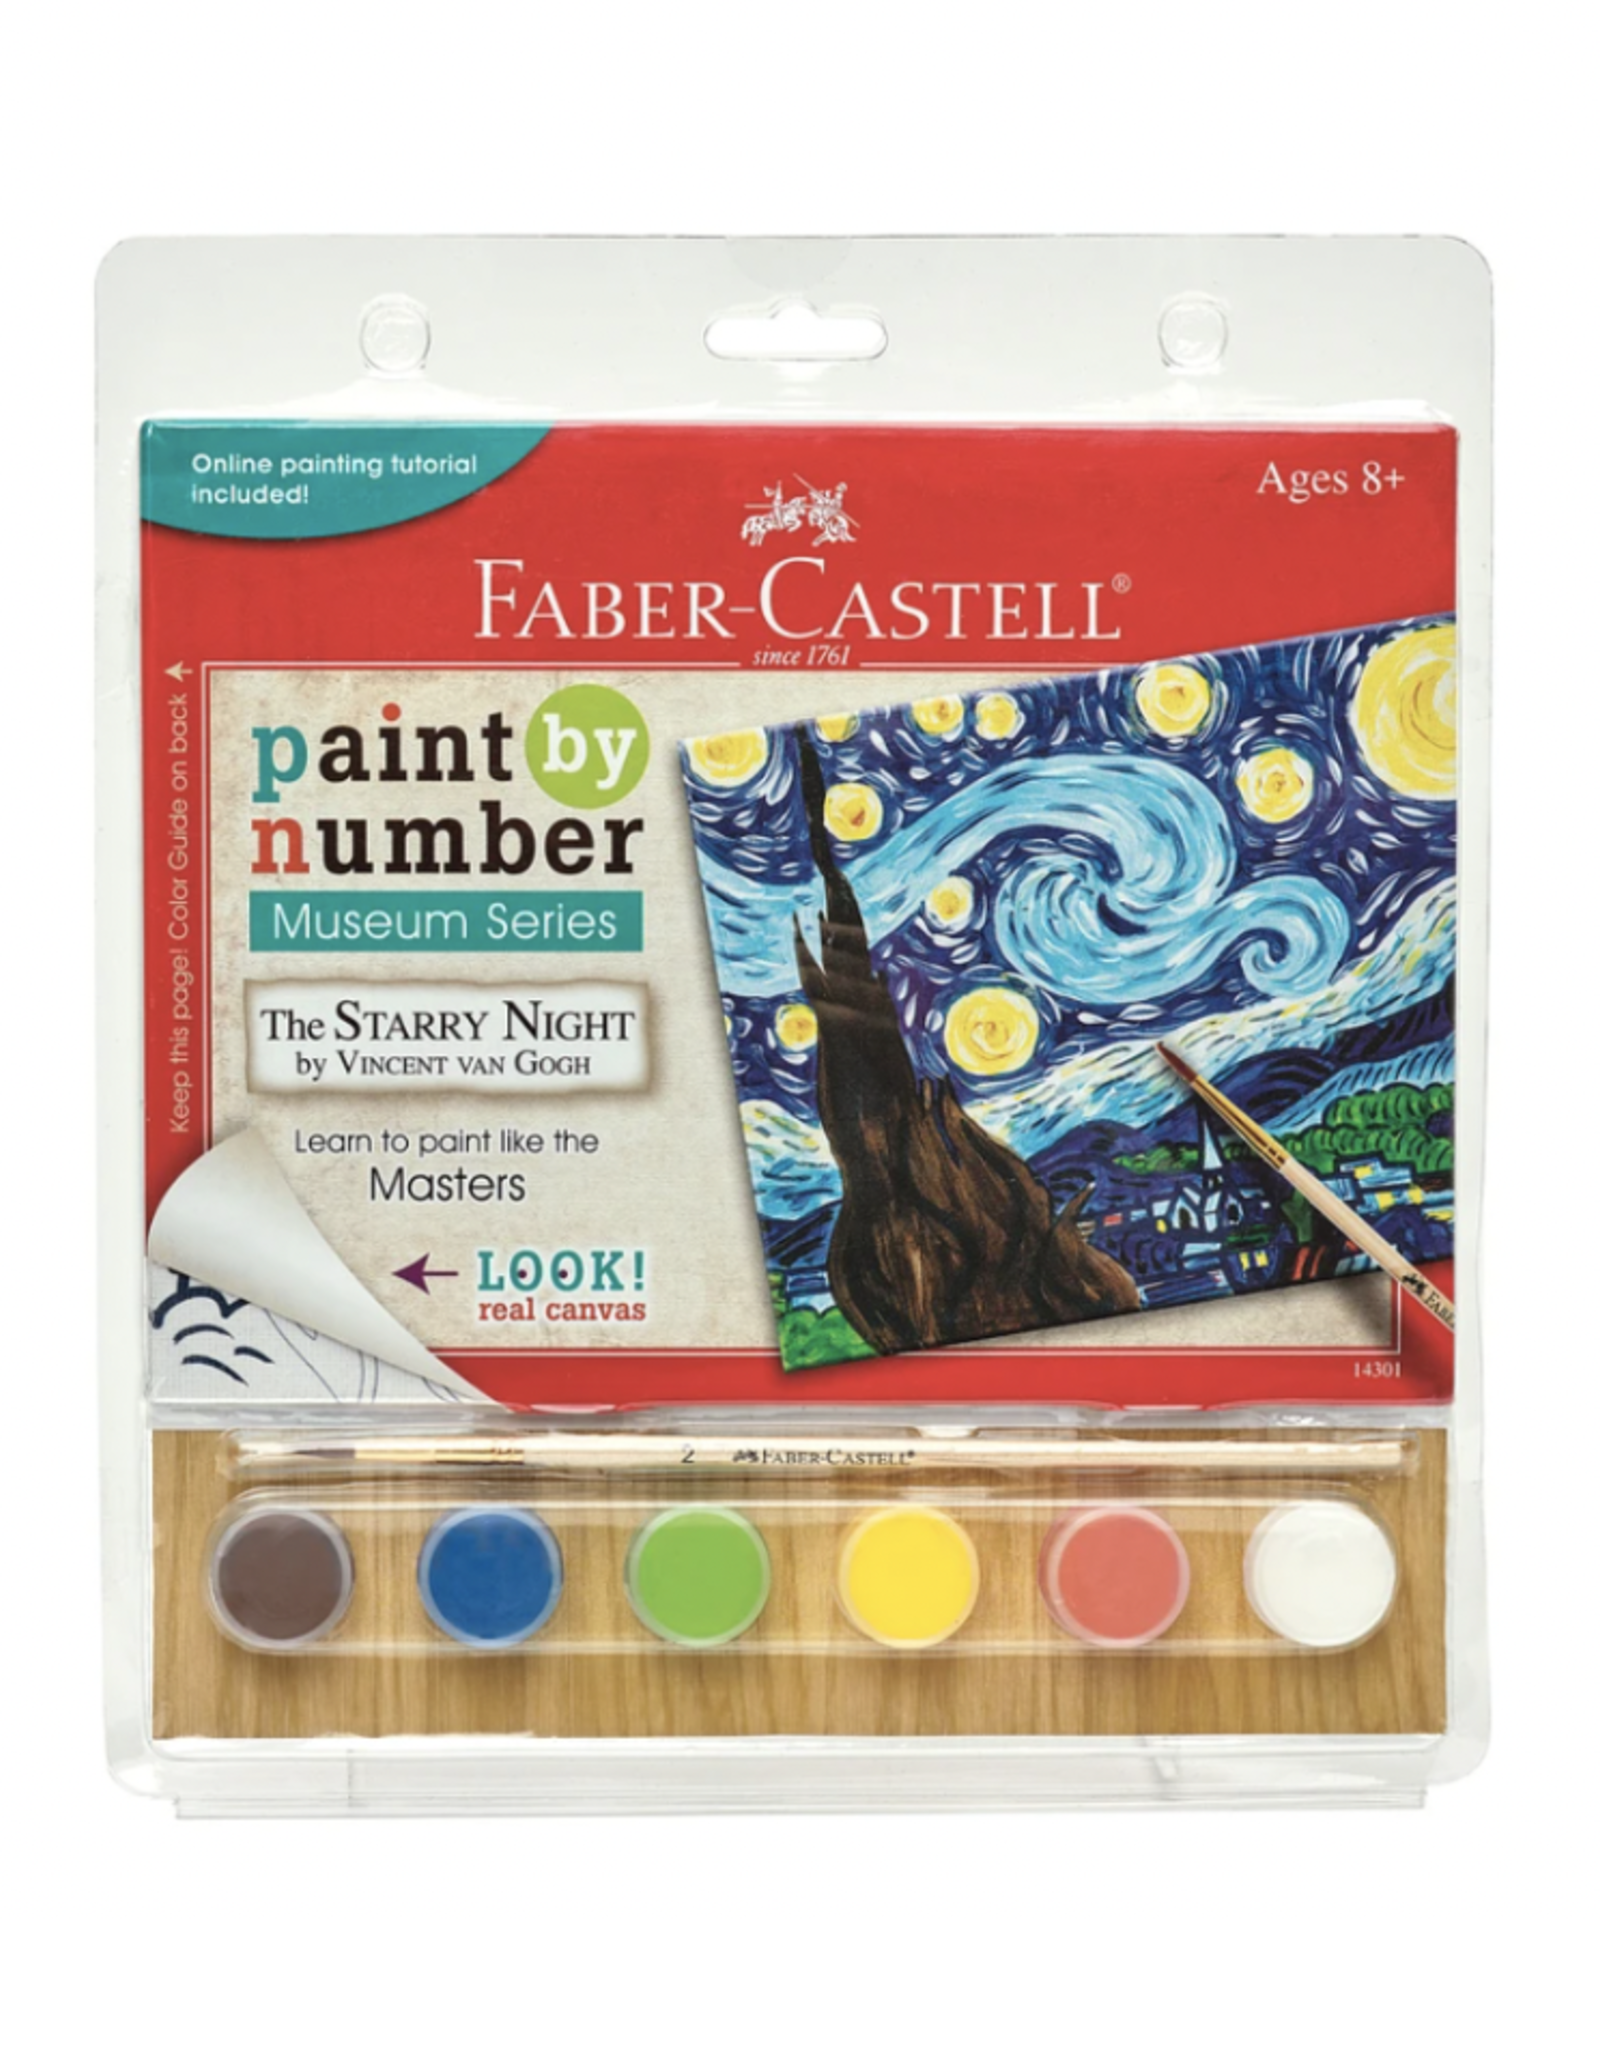 Faber Castell Paint By Number Museum Series - The Starry Night